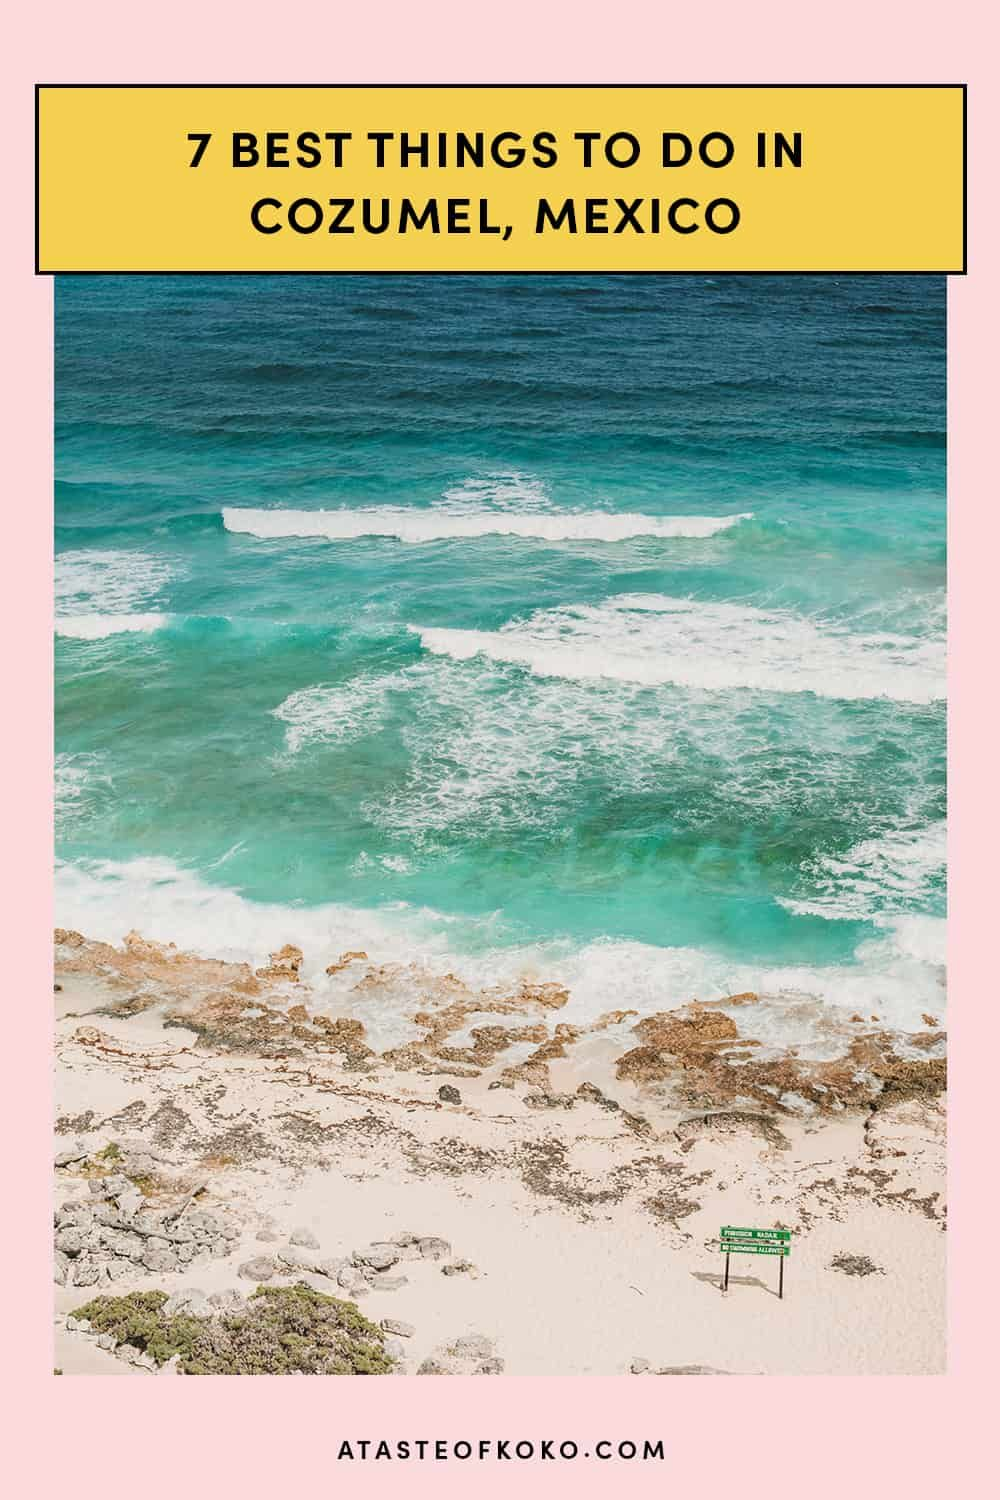 7 Best Things To Do In Cozumel Mexico A Taste Of Koko Travel